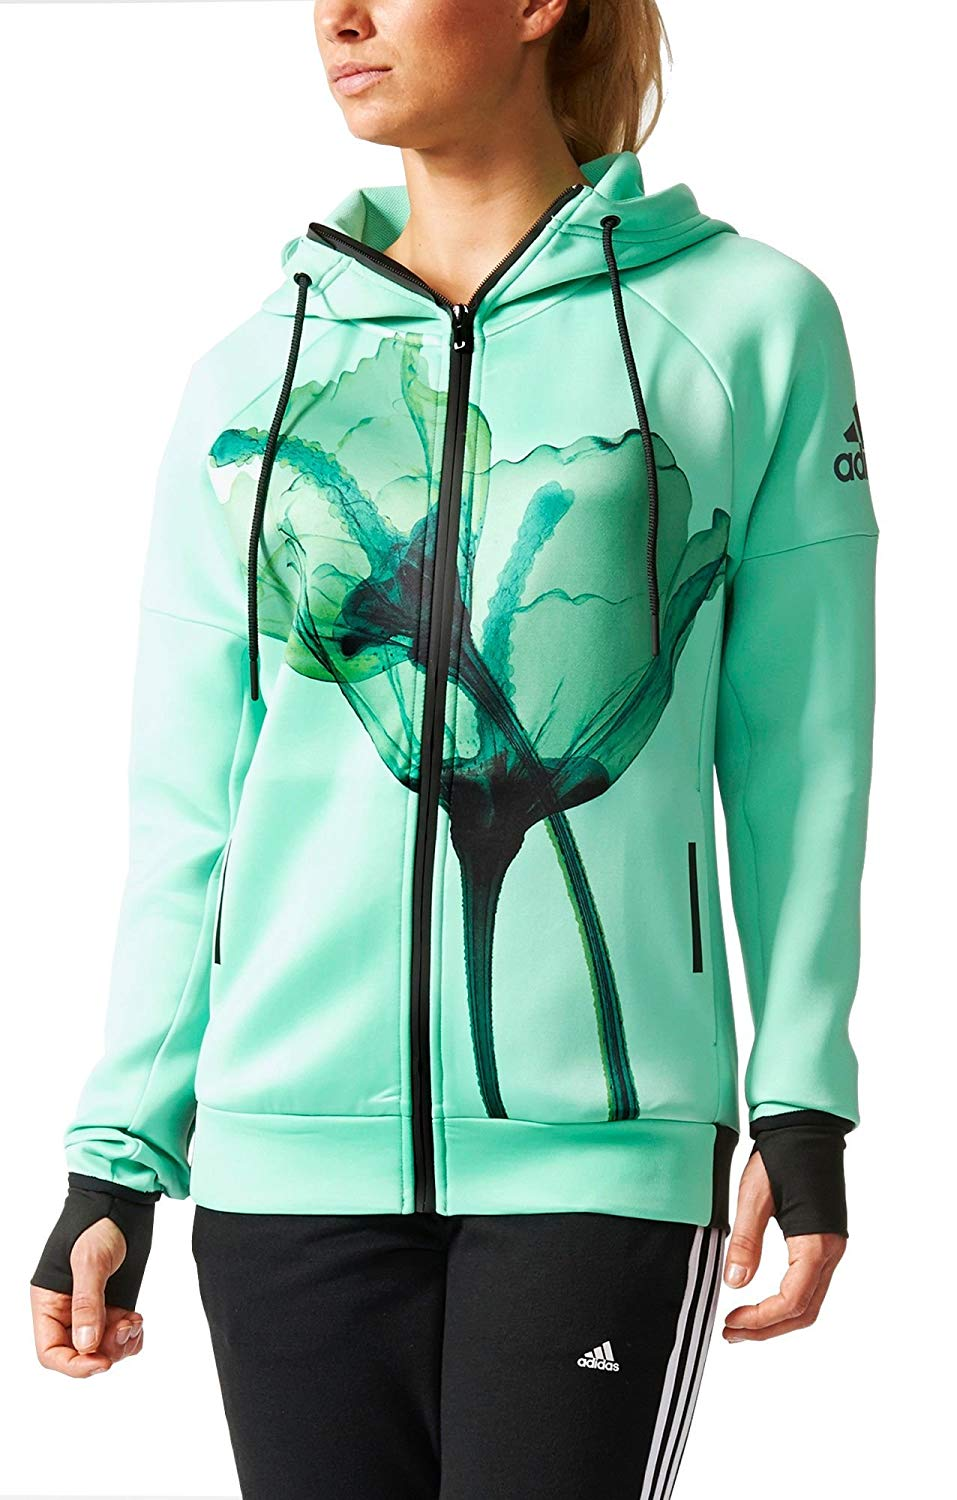 adidas Women's Hooded Weats Daybreaker Olympic Green AJ6327